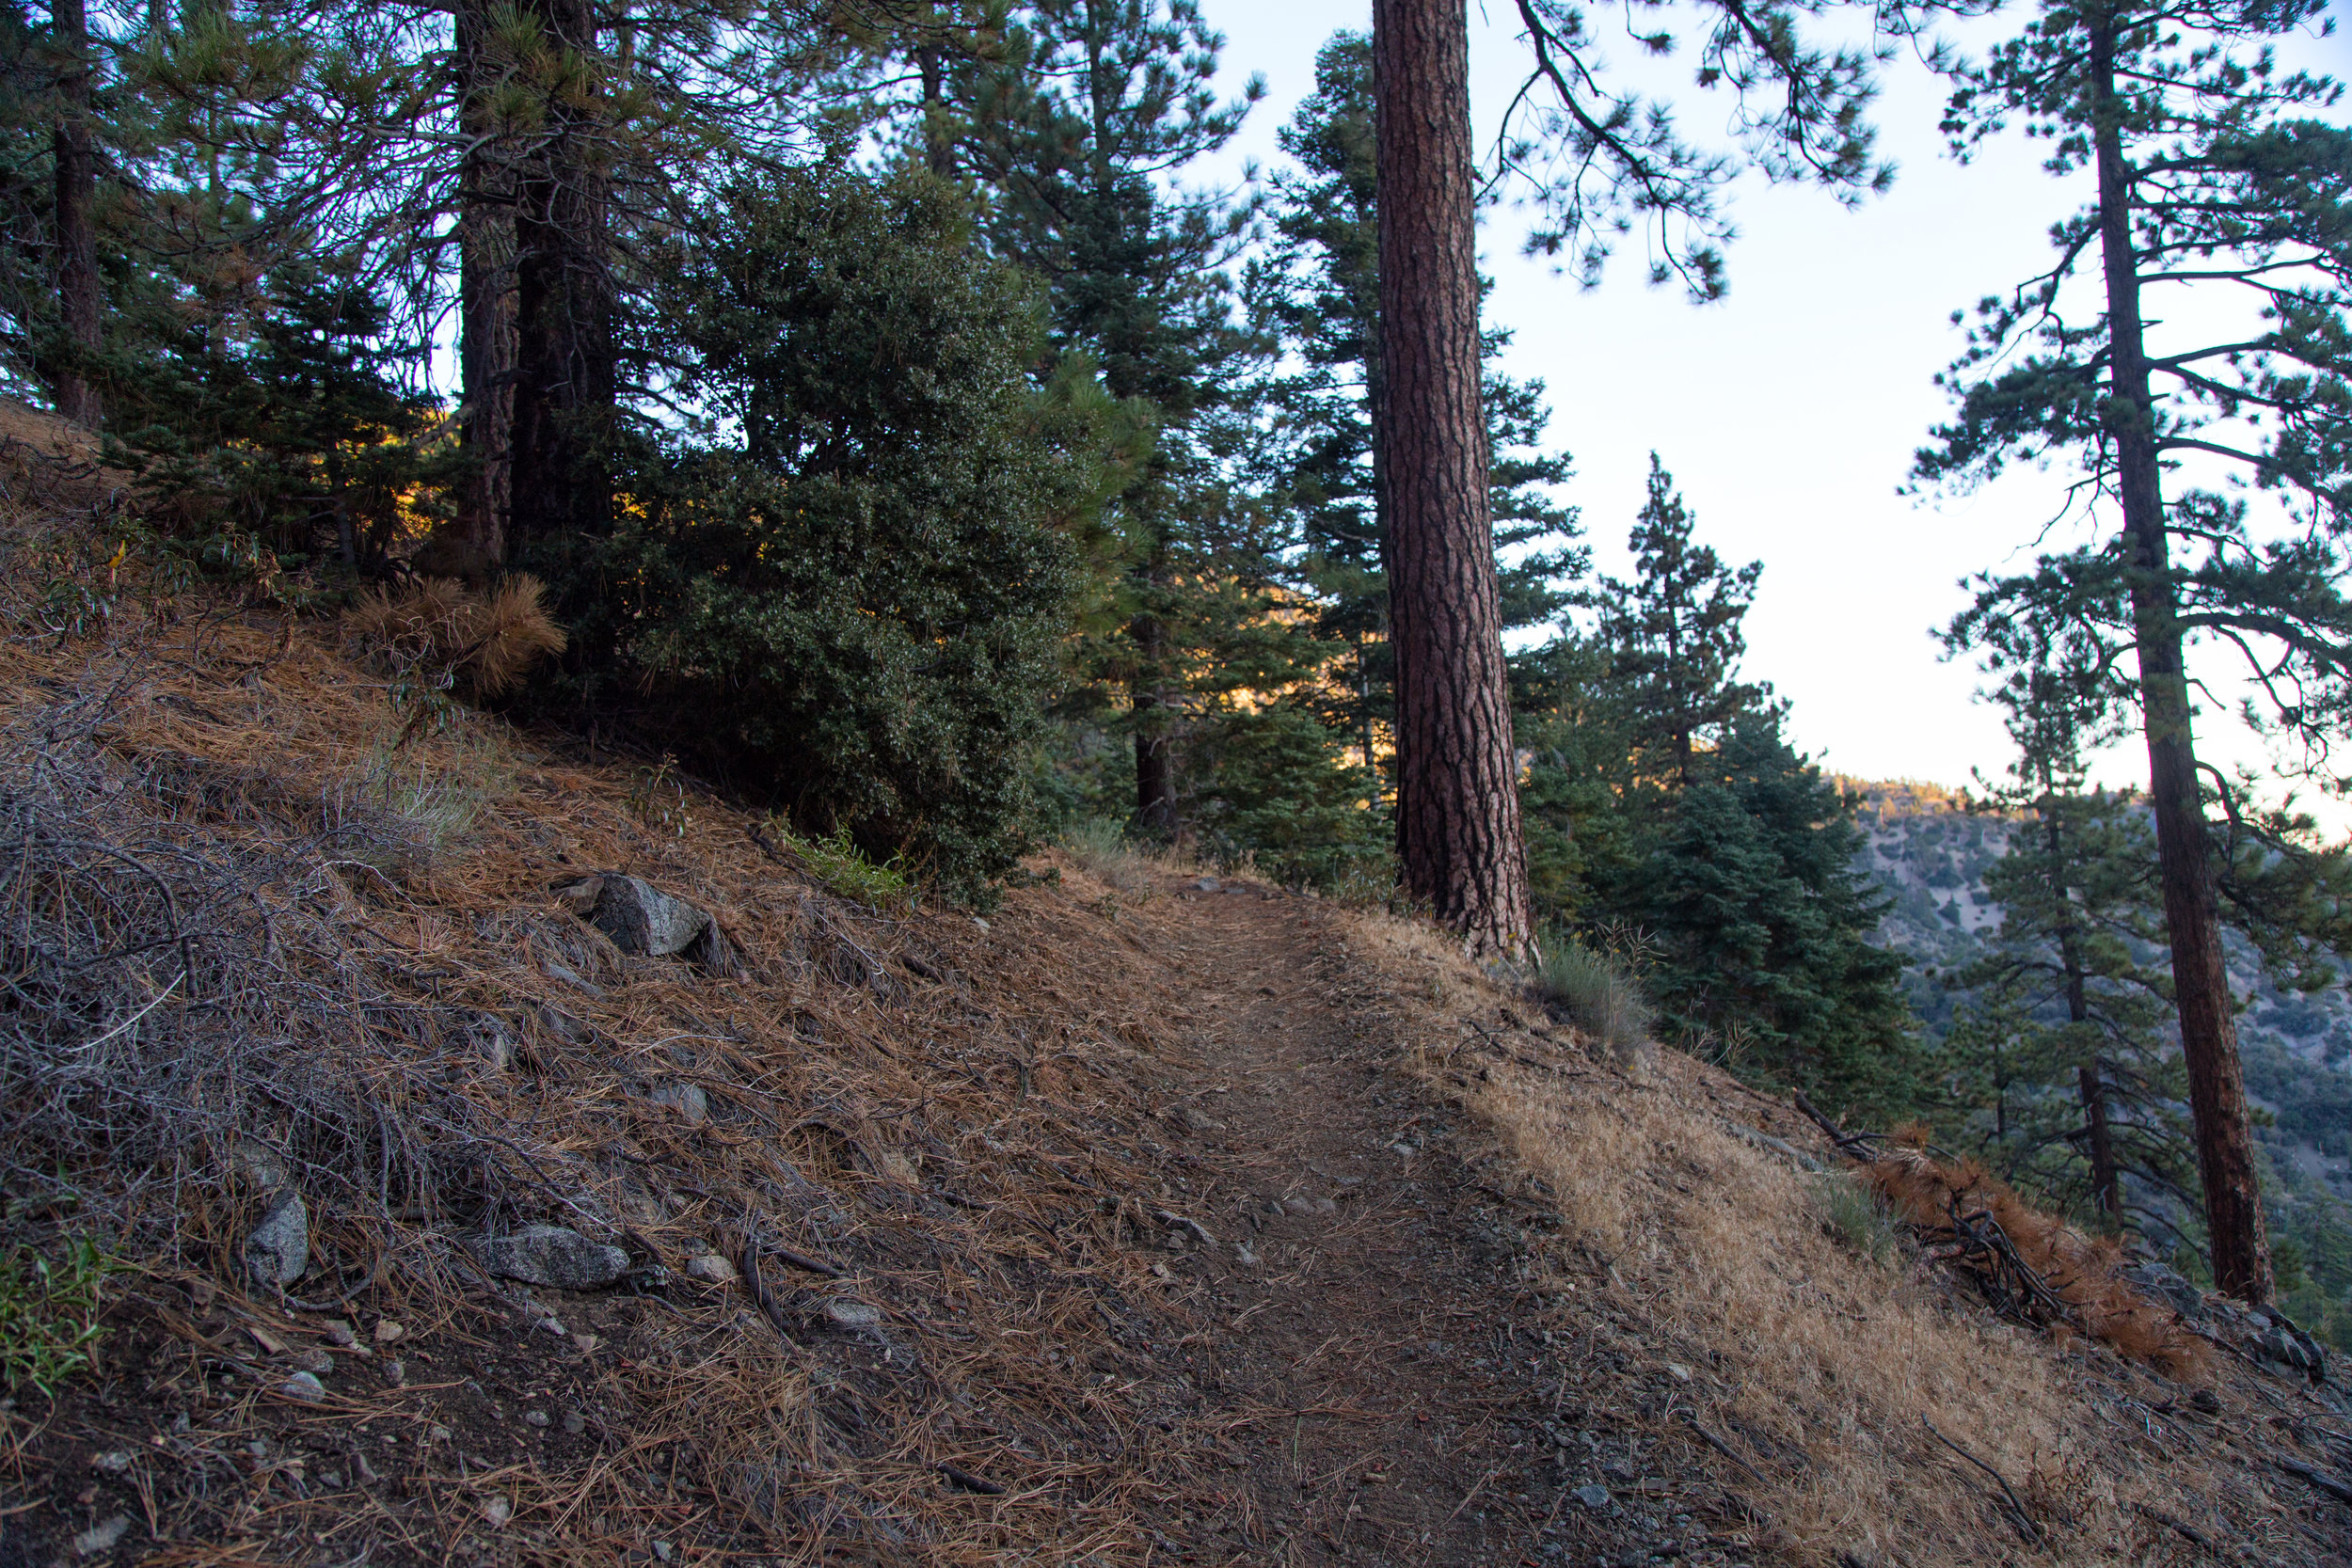 Started off on the PCT Silver Moccasin Trail at 7:08 am.